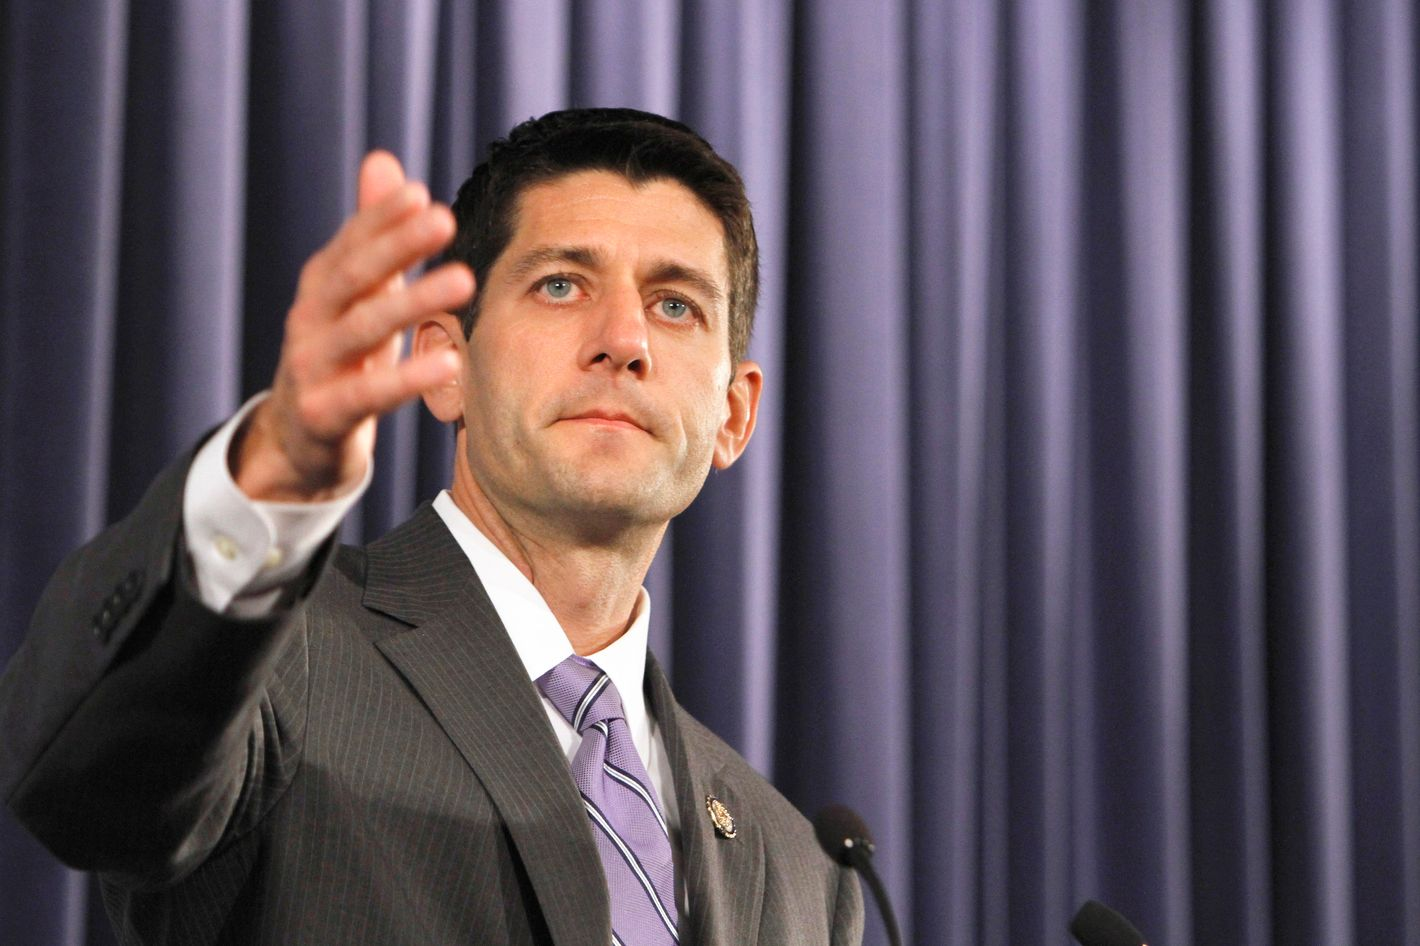 House Budget Committee Chairman Rep. Paul Ryan, R-Wis., speaks at the Heritage Foundation in Washington, Wednesday, Oct. 26, 2011. (AP Photo/Jacquelyn Martin)